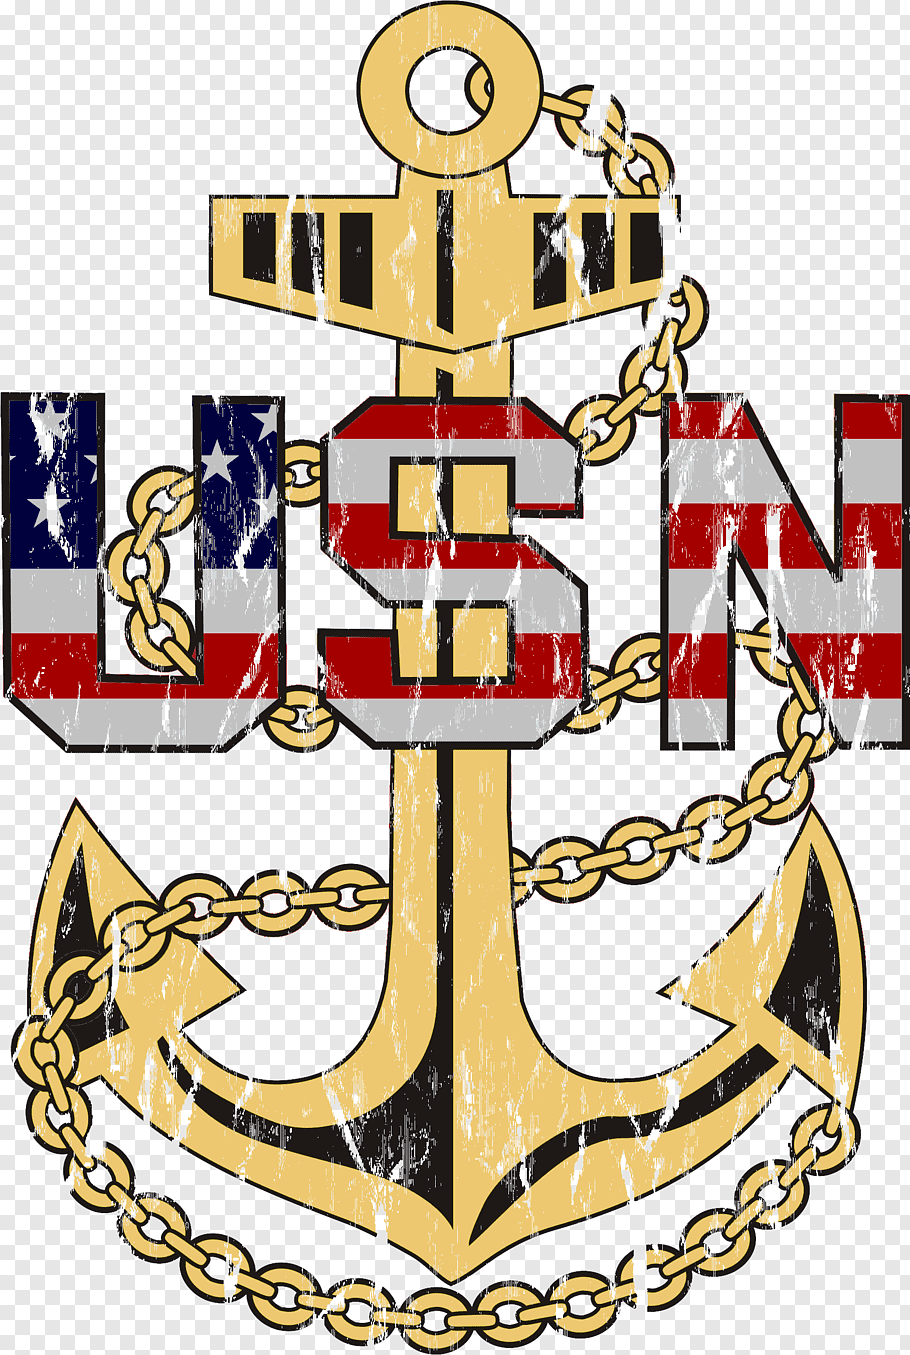 Master Chief Petty Officer Of The Navy cutout PNG & clipart.